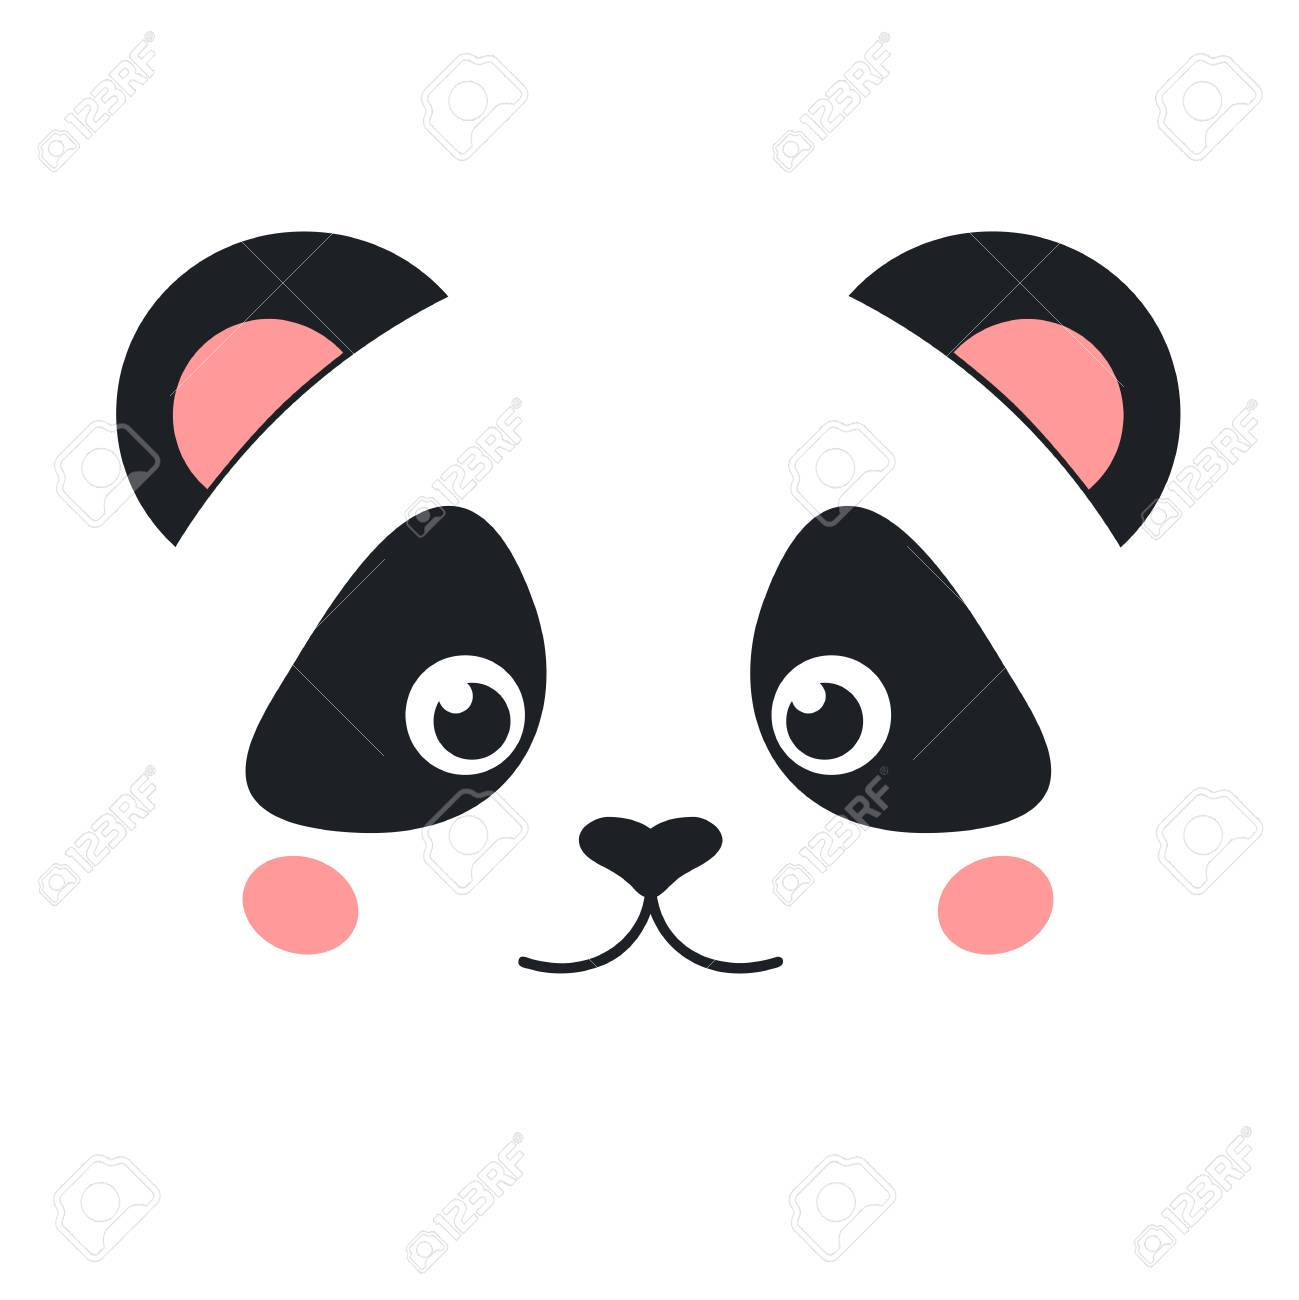 Cute Panda Face Isolated On White Background Flat Style Stock Vector